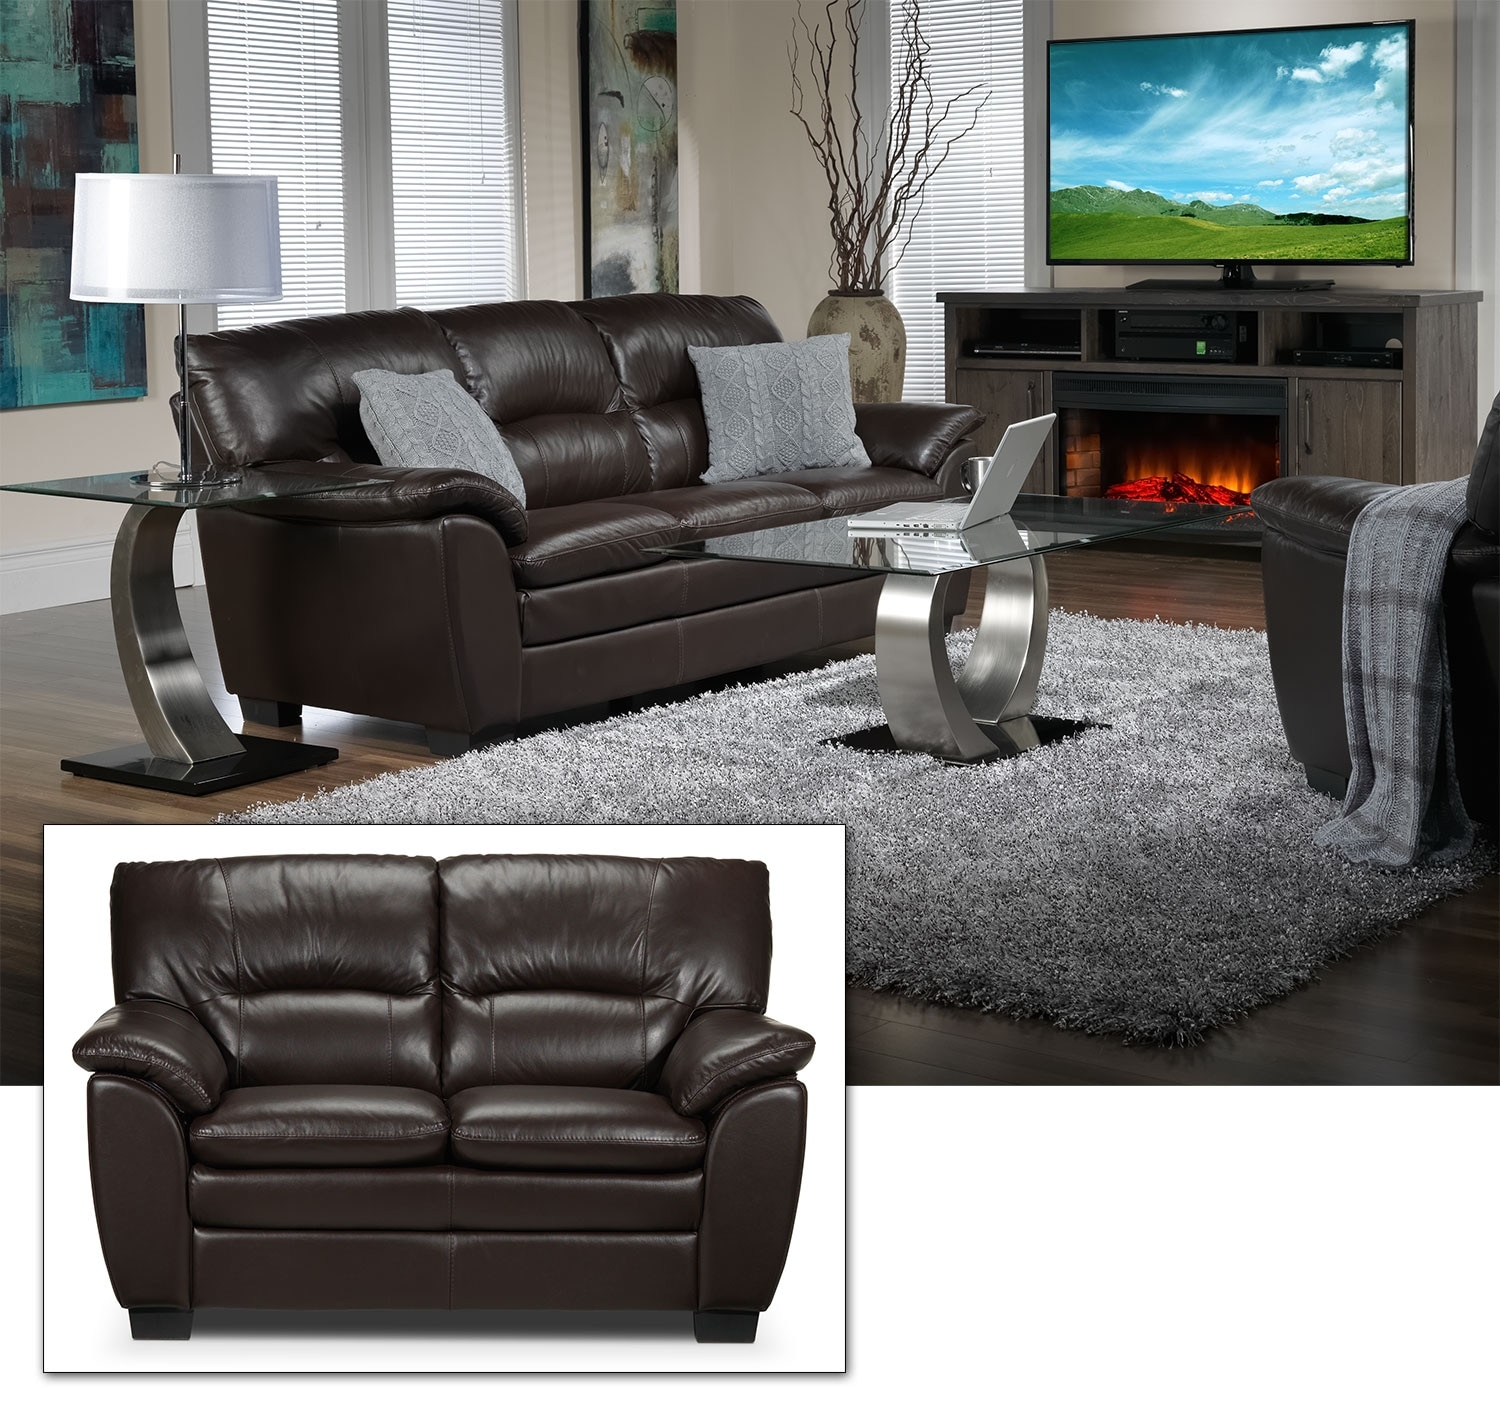 Rodero Sofa and Loveseat Set - Brown